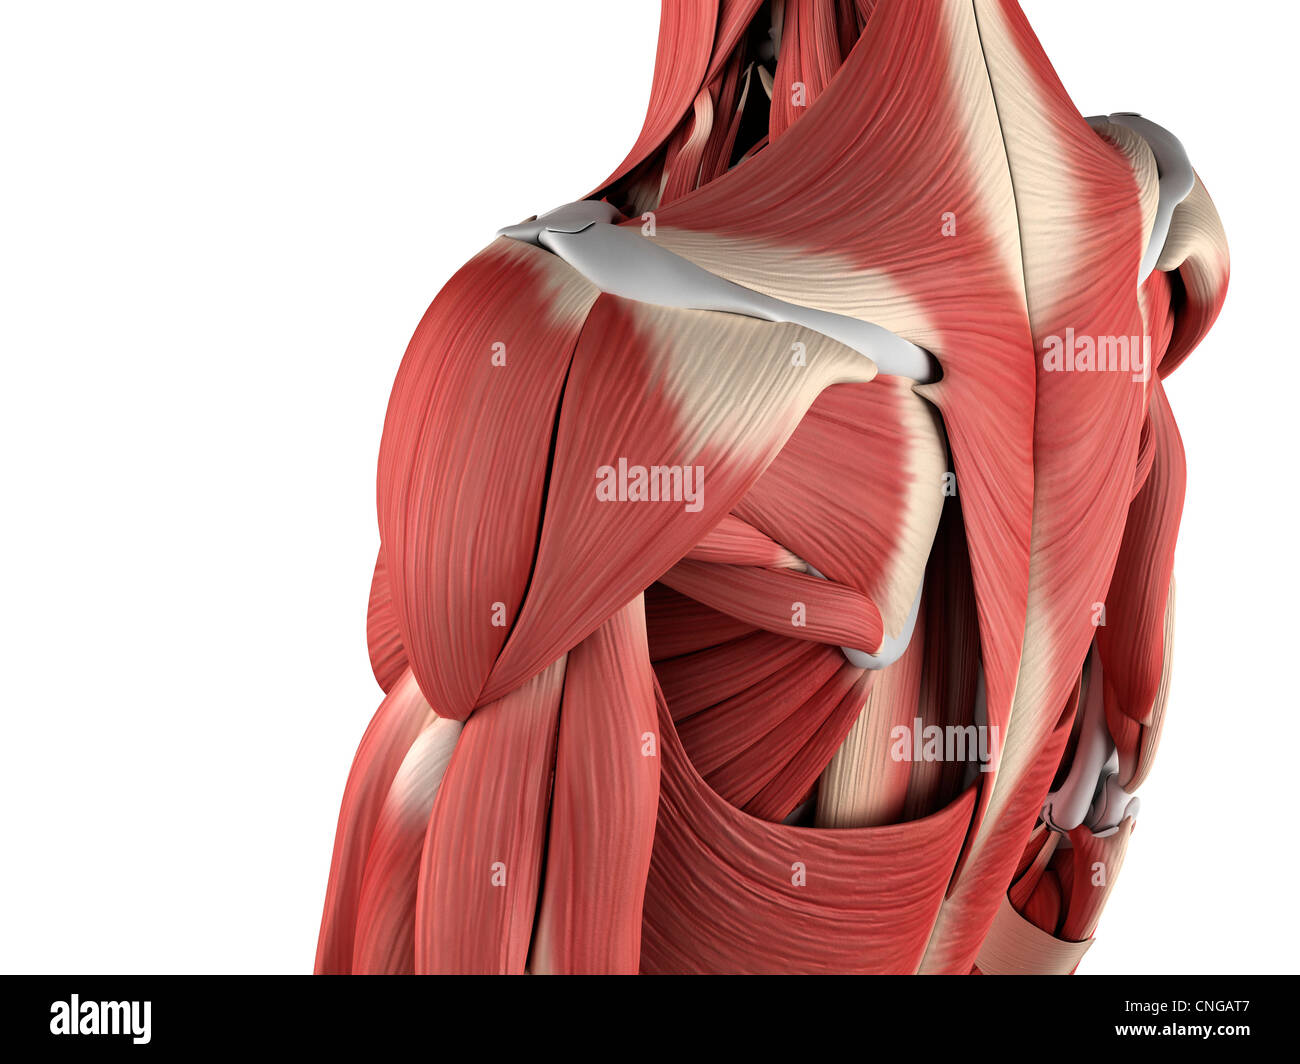 Male musculature  artwork Stock Photo